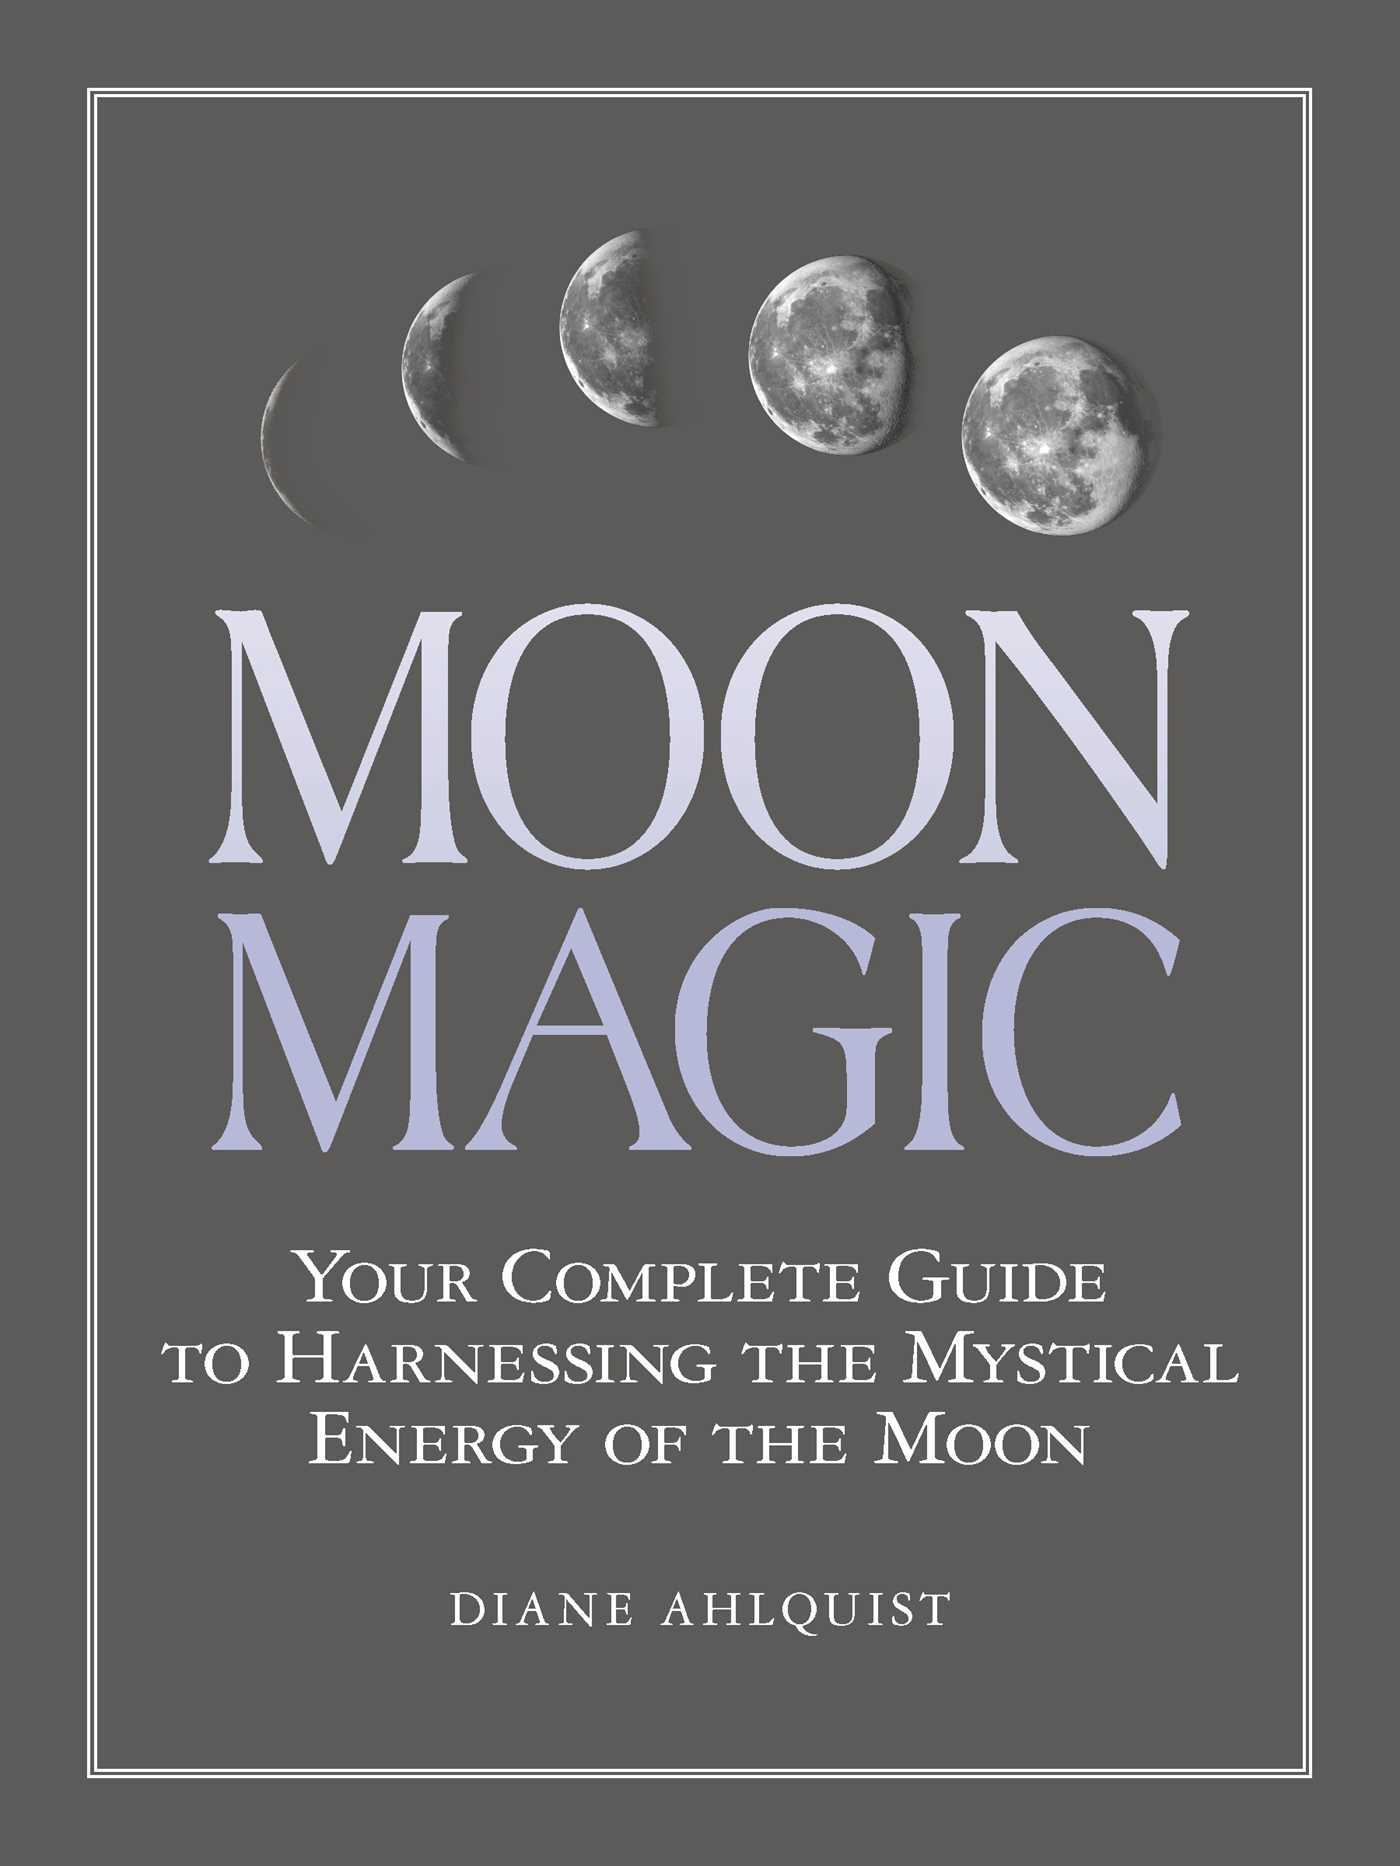 Moon Magic Your Complete Guide to Harnessing the Mystical Energy of the Moon